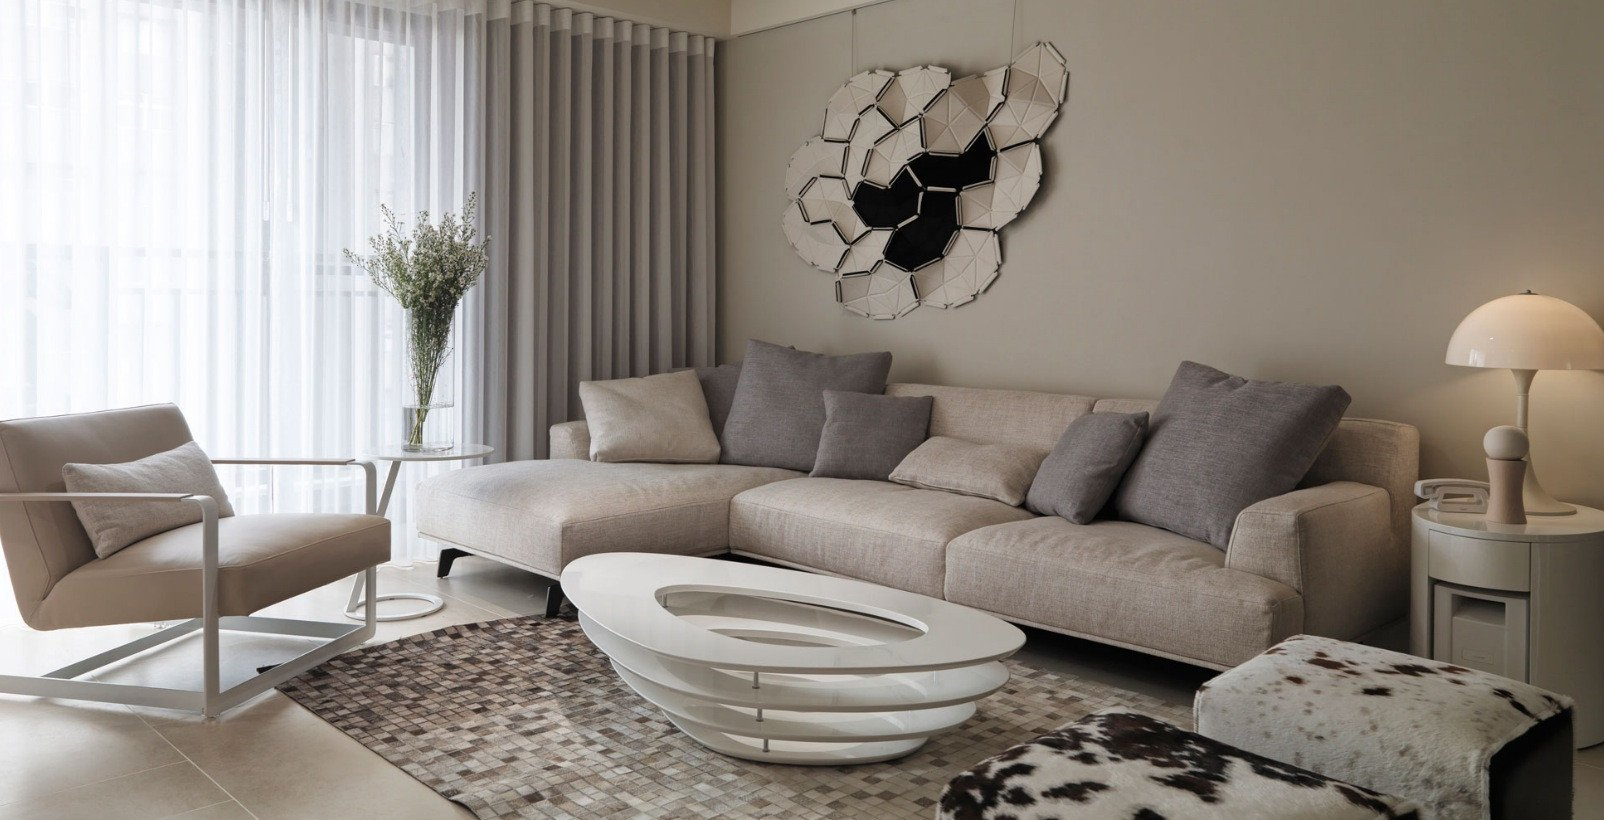 Beige Modern Living Room Decorating Ideas Elegant Neutral Contemporary Apartment by W C H Design Studio